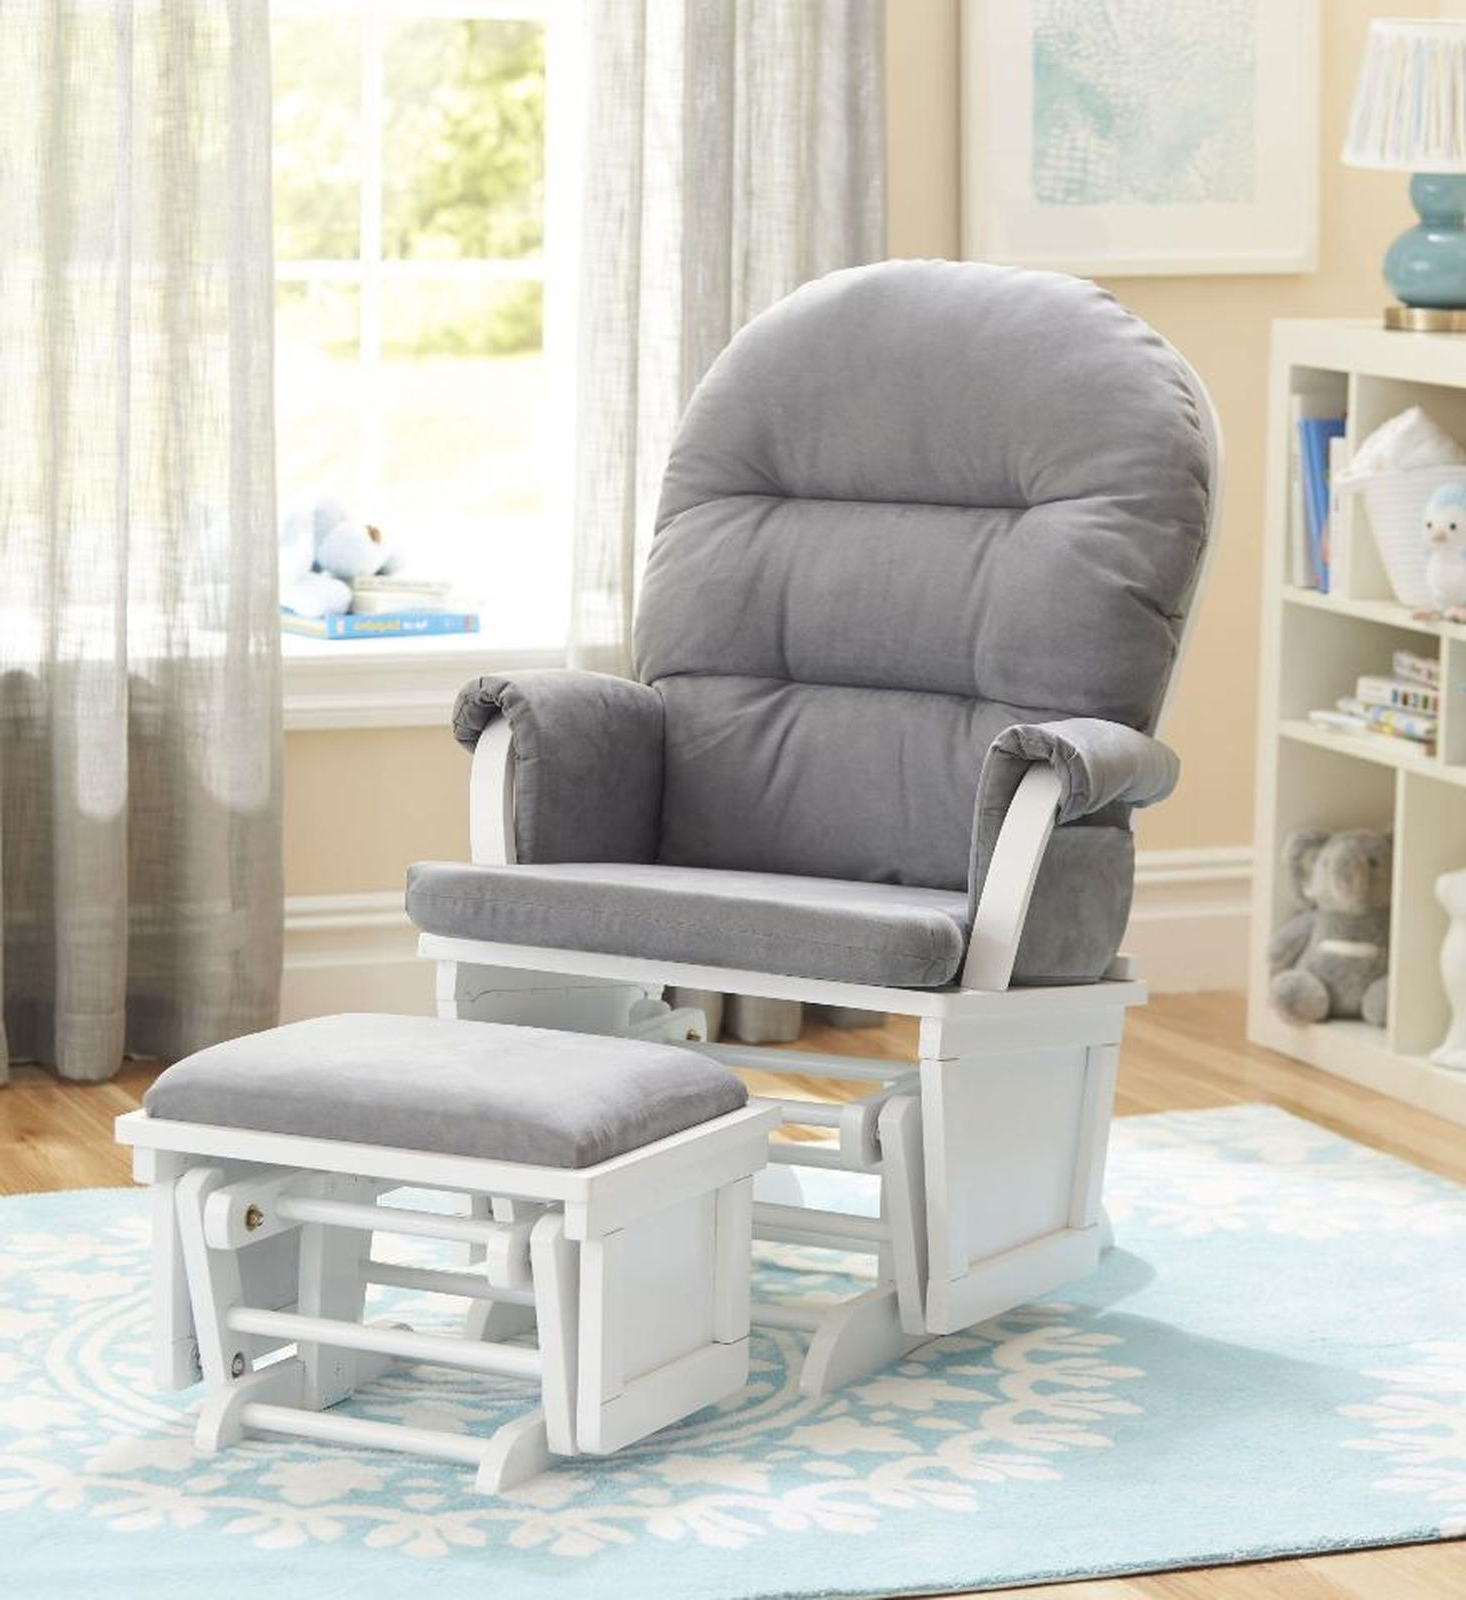 Baby Nursery: Nice Rocking Chair For Baby Nursery Ideas Babies R Us Inside Widely Used Rocking Chairs For Baby Room (View 11 of 15)